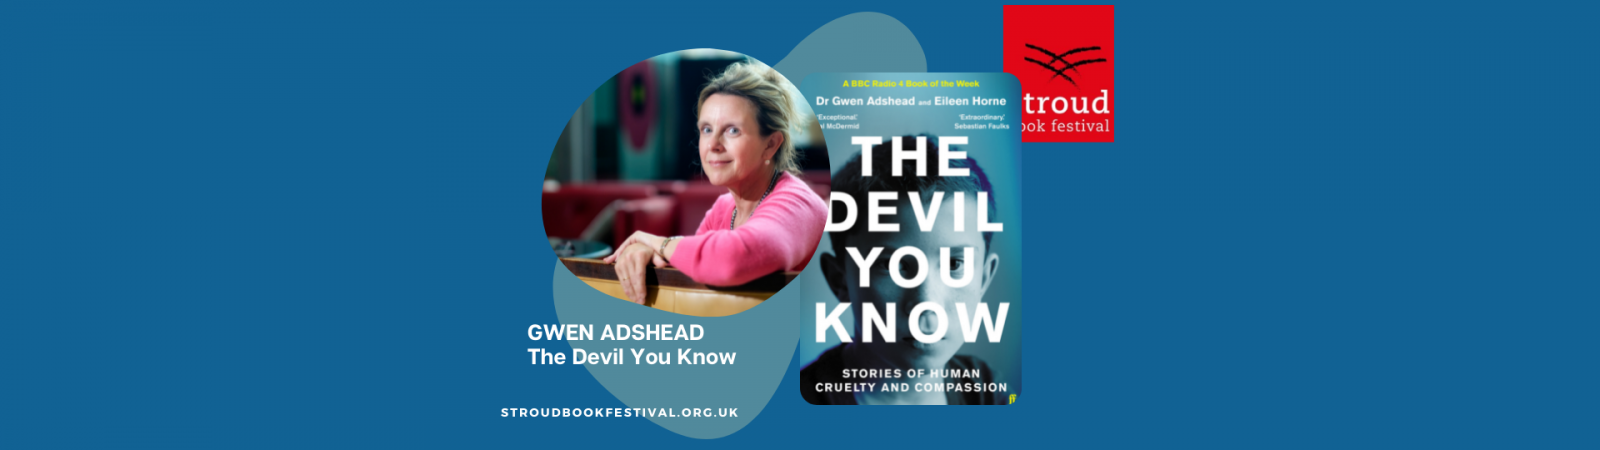 The Devil You Know, Gwen Adshead